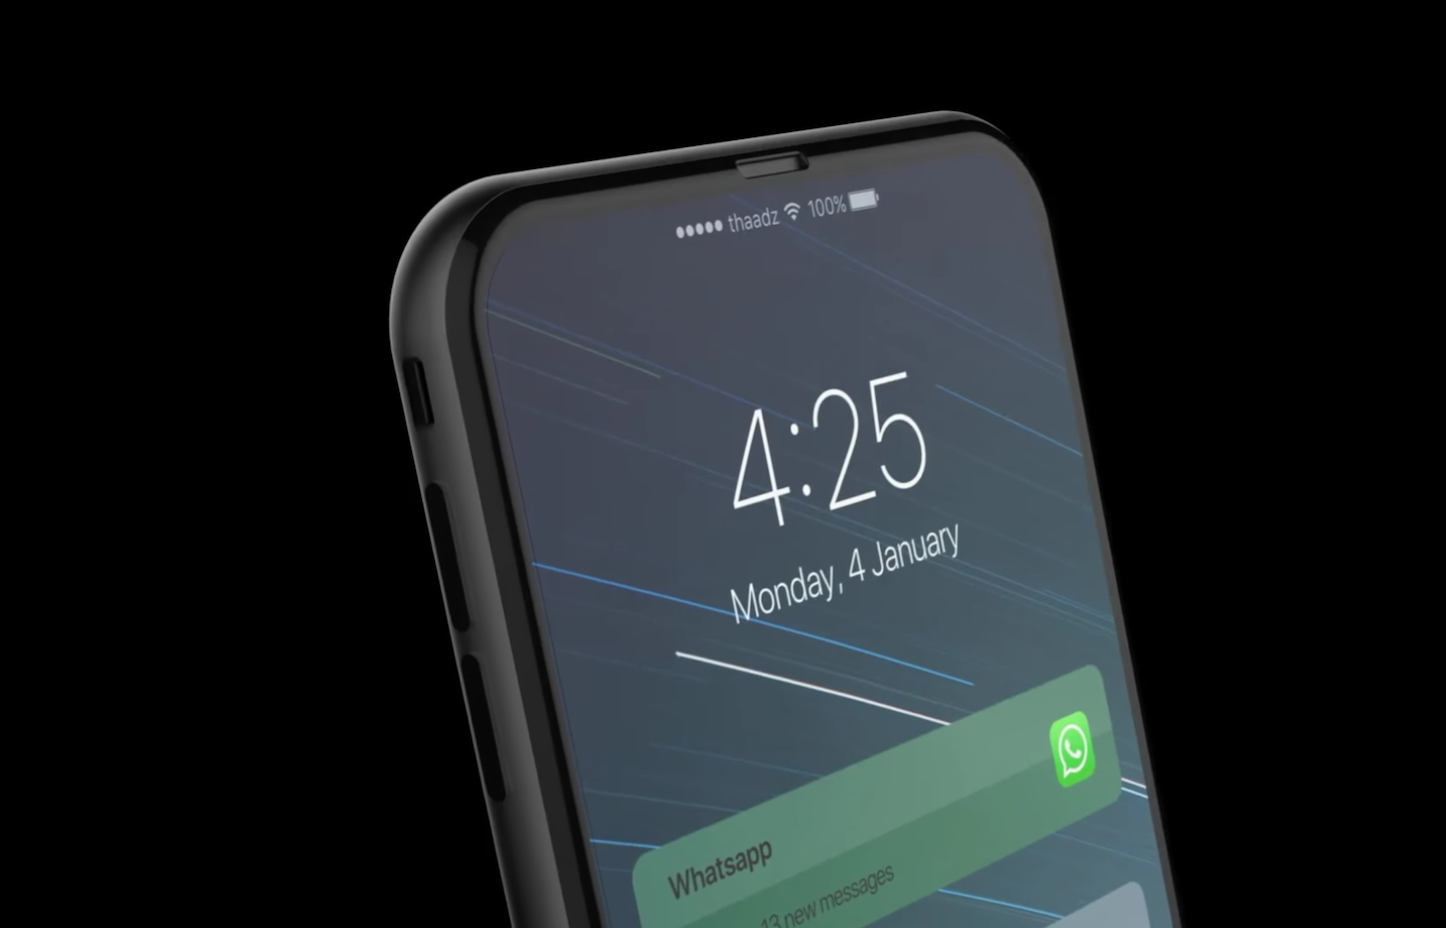 iphone8-concept-image-3.png